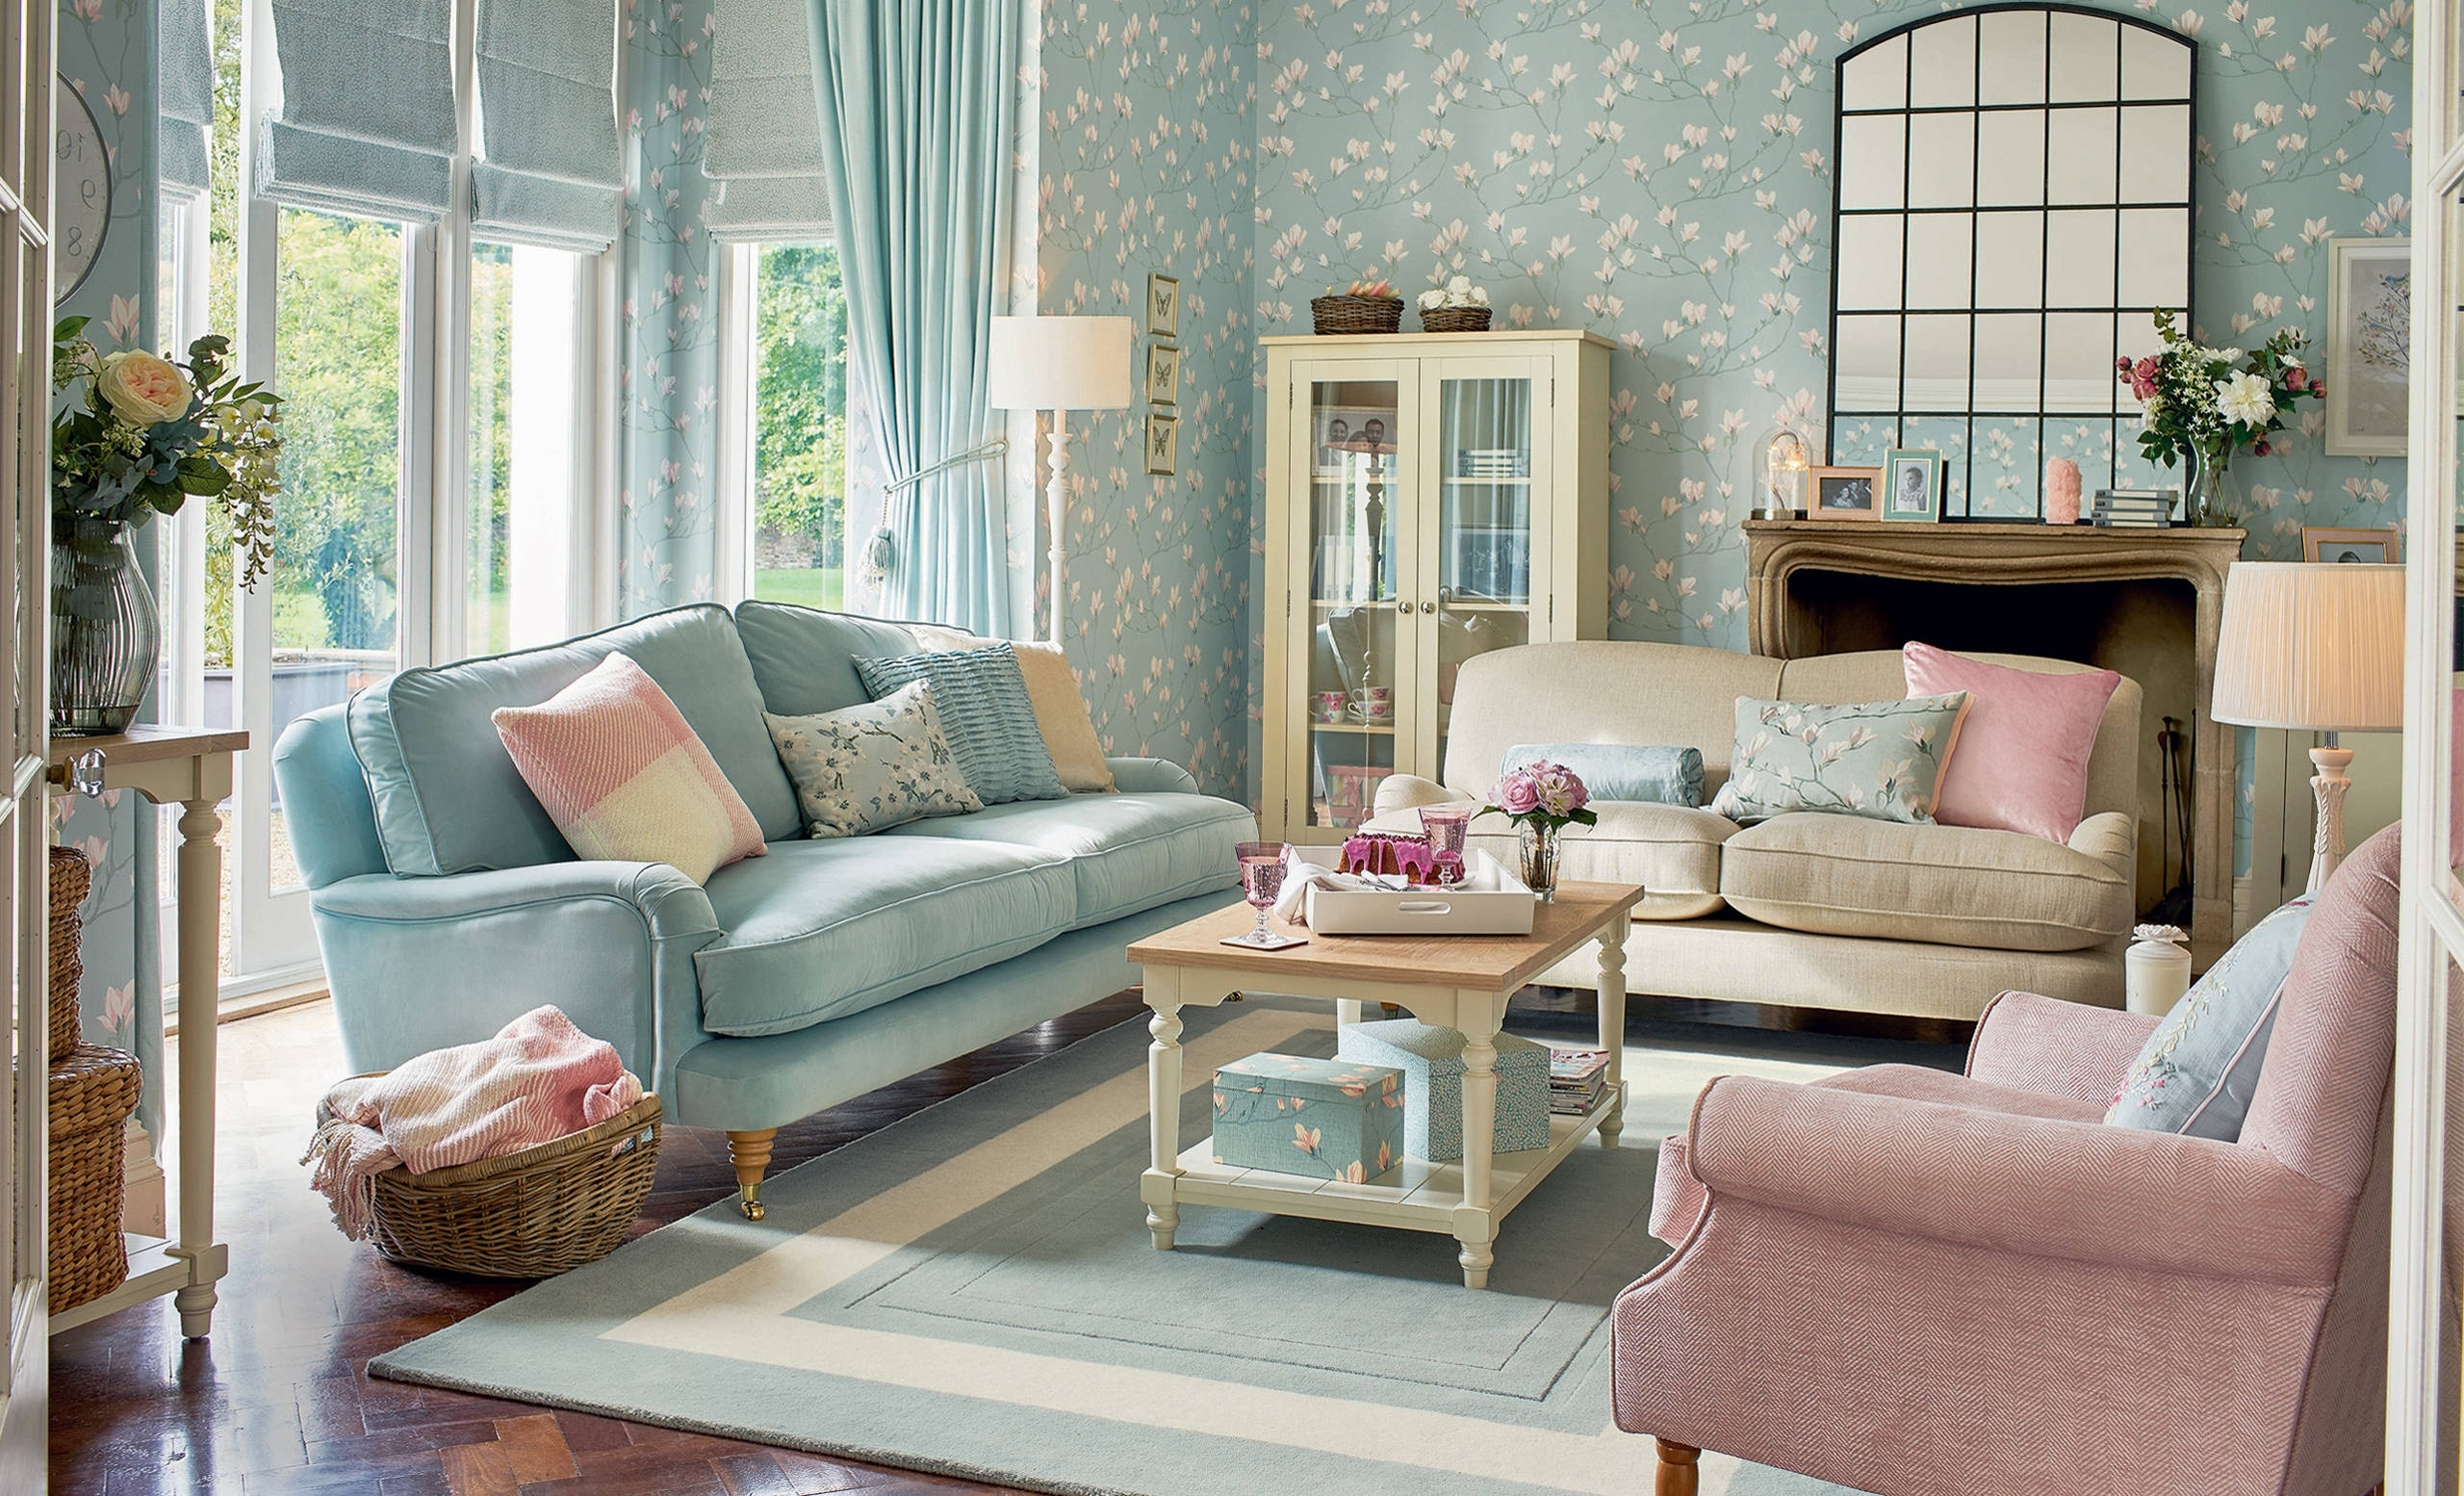 Duck Egg Living Room Ideas & Photos | Houzz 30+ Living Room Decorating Duck Egg Inspirations